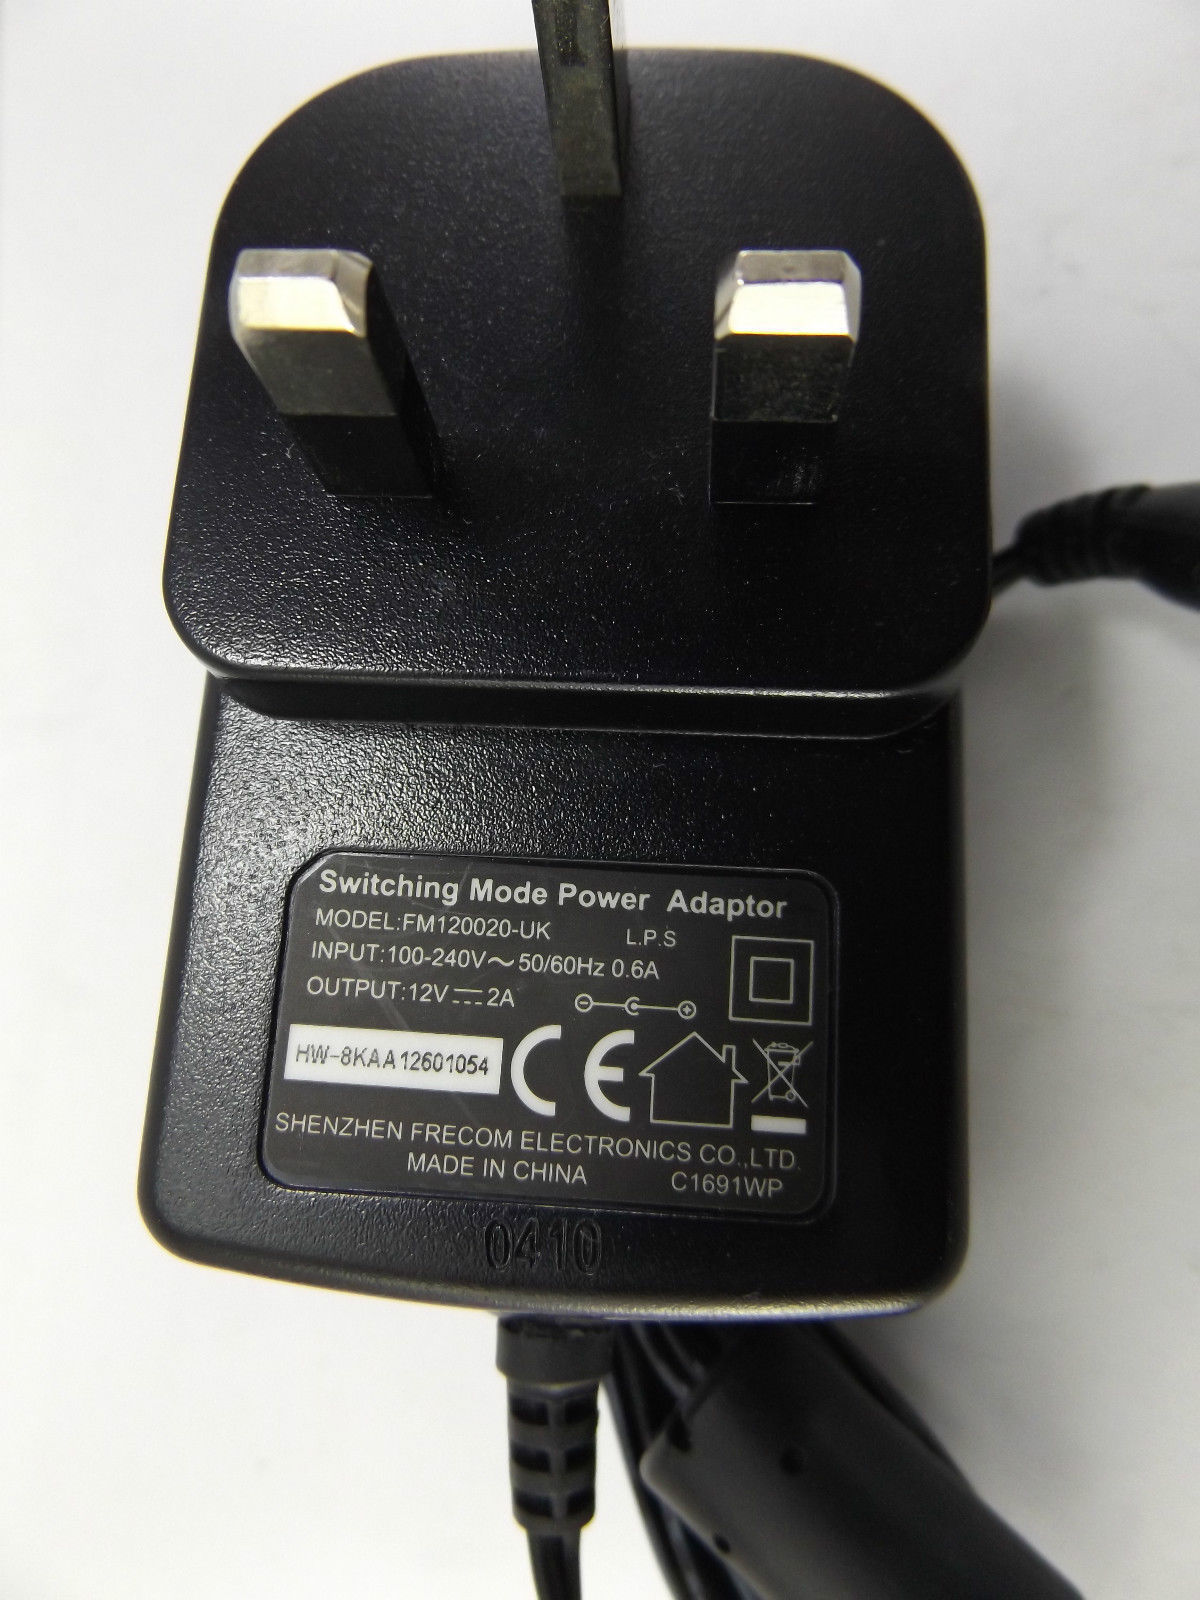 Switching Power Adaptor FM120020-UK Input 100-240V 50-60Hz 0.6A Output 12V 2A